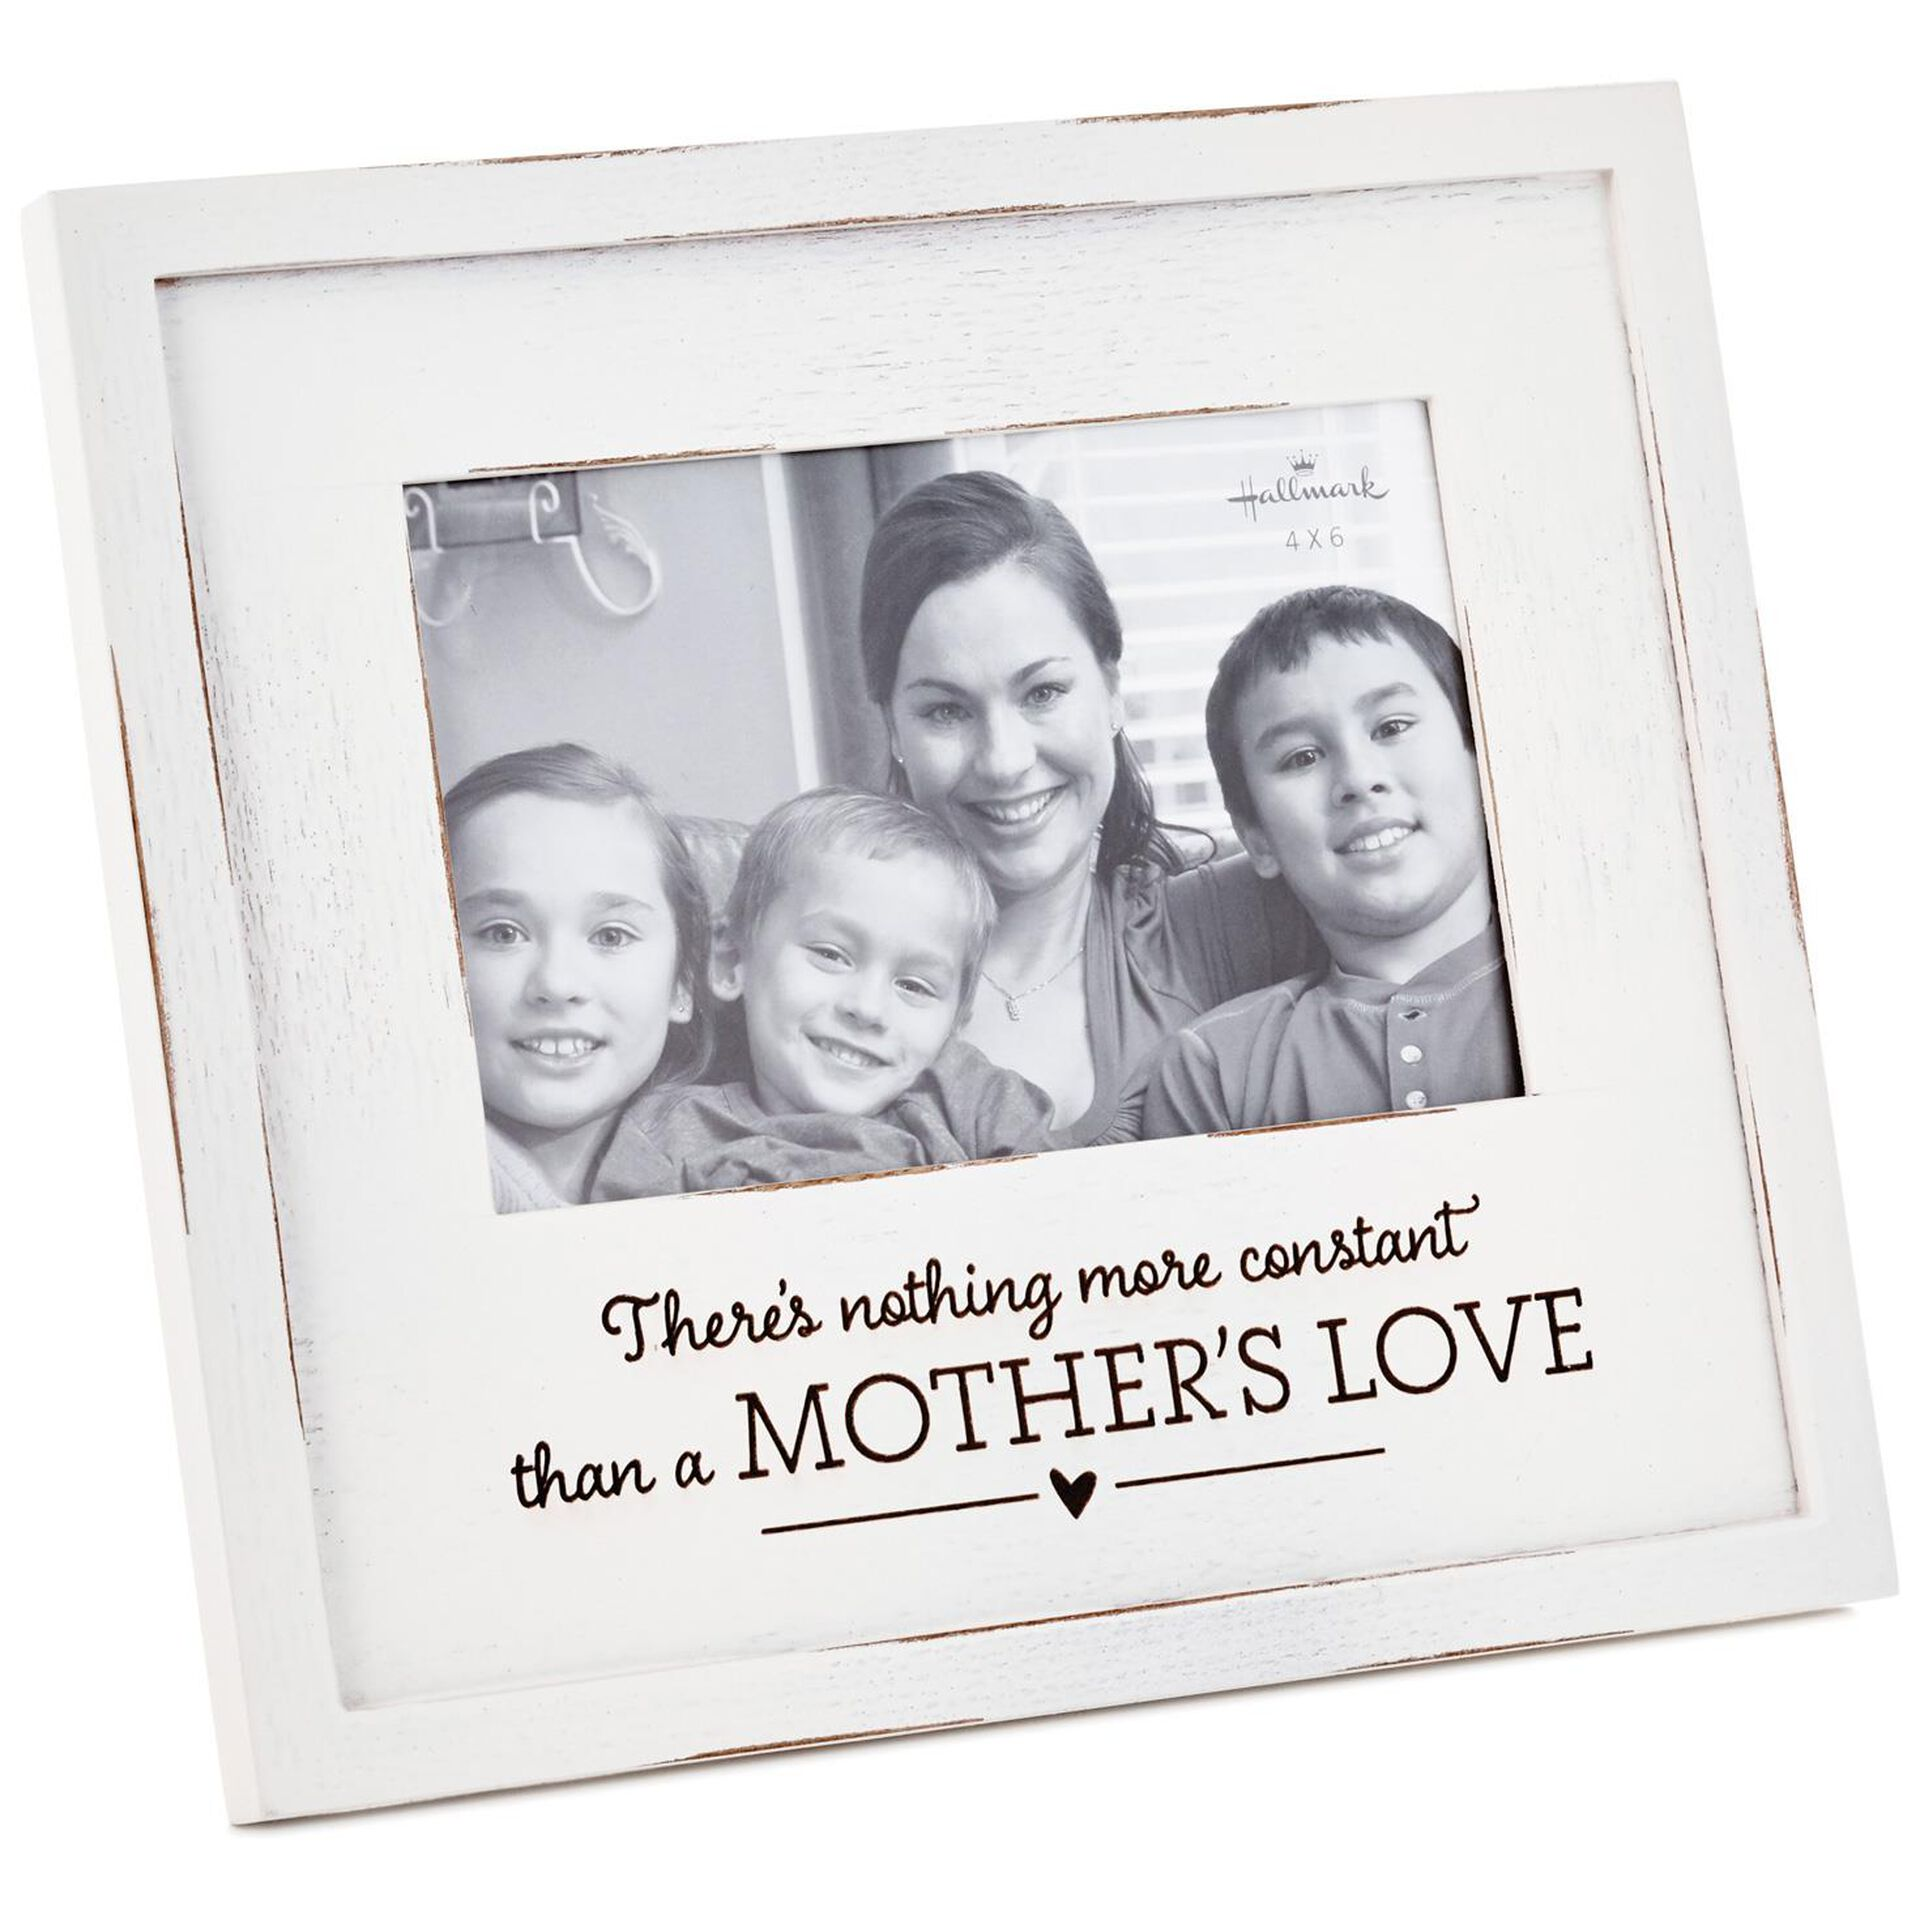 Mother/'s Day family photo a little bit of loud Wood photo frame home decor 4 x 6 photo a little bit of crazy anniversary gift